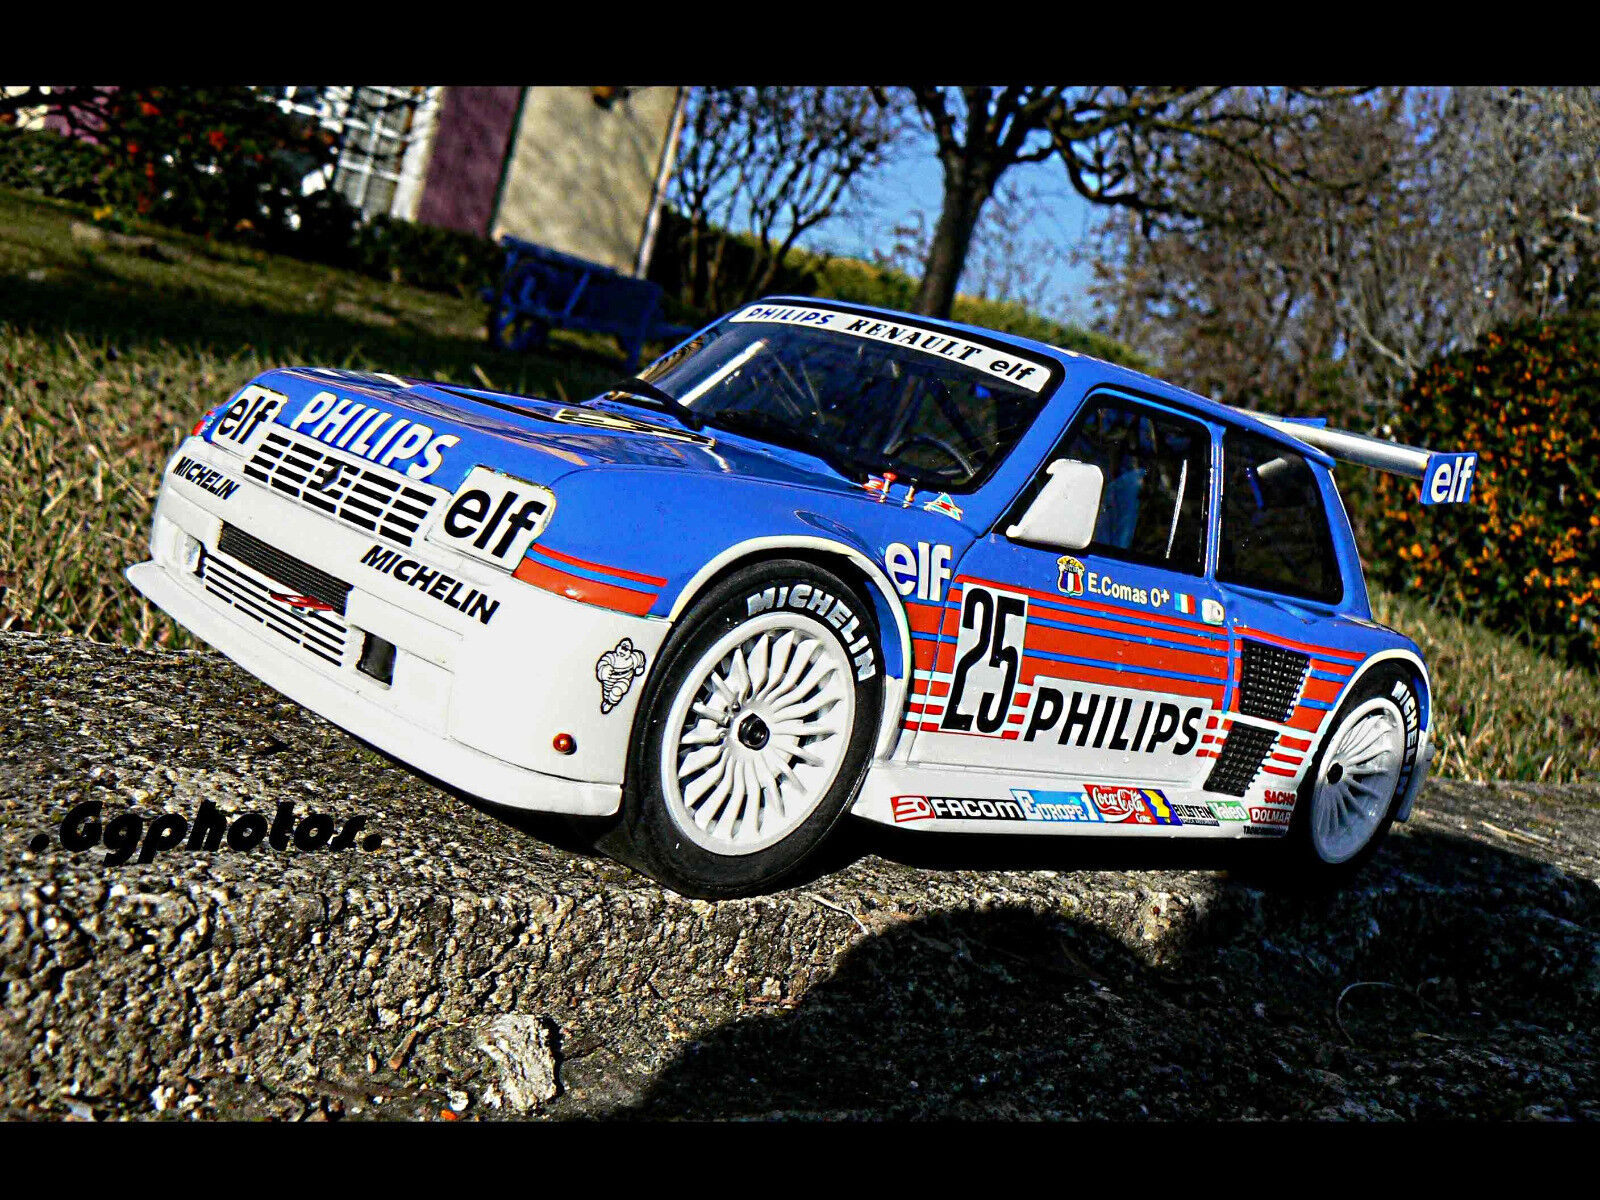 Renault 5 r5 superproduction comas 1/18 otto ottomobile ottomodels boxed